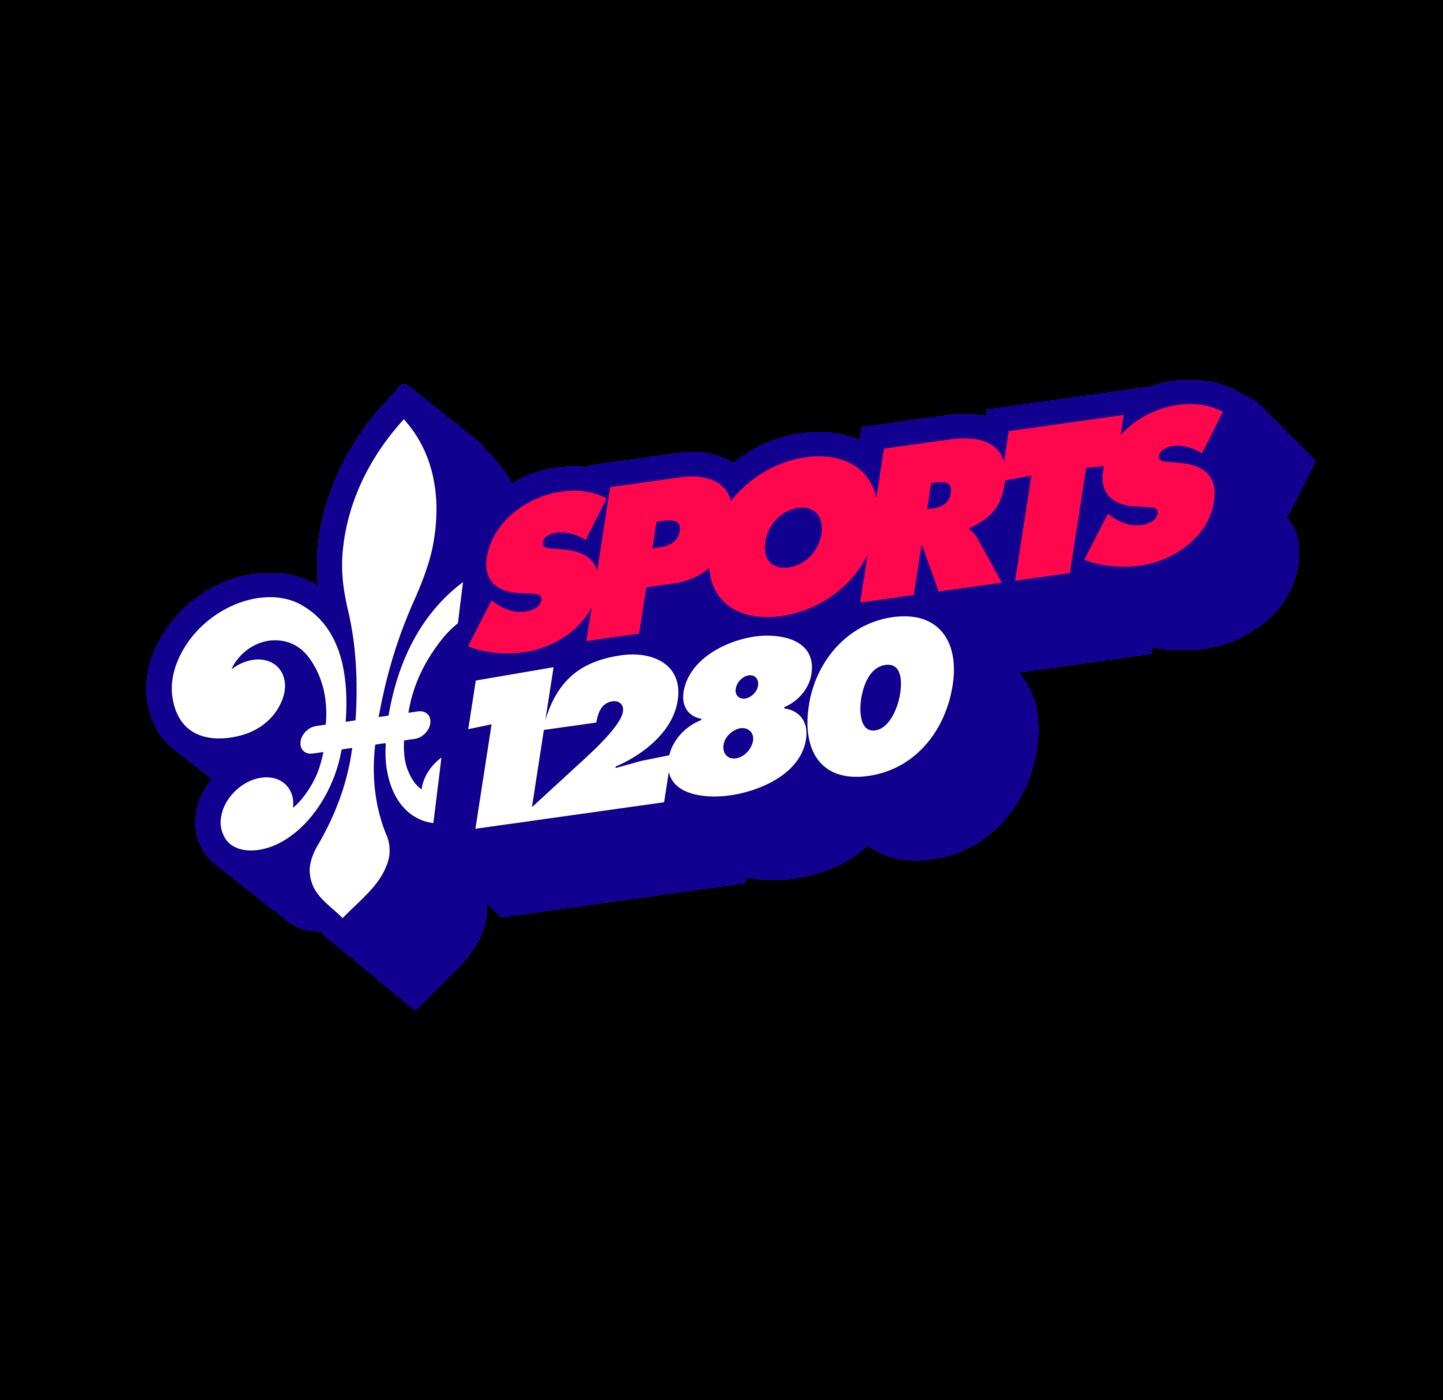 Listen to the Chris Gordy Episode - Talking Saints, Pelicans, LSU & Tulane On The Chris Gordy Show on iHeartRadio | iHeartRadio